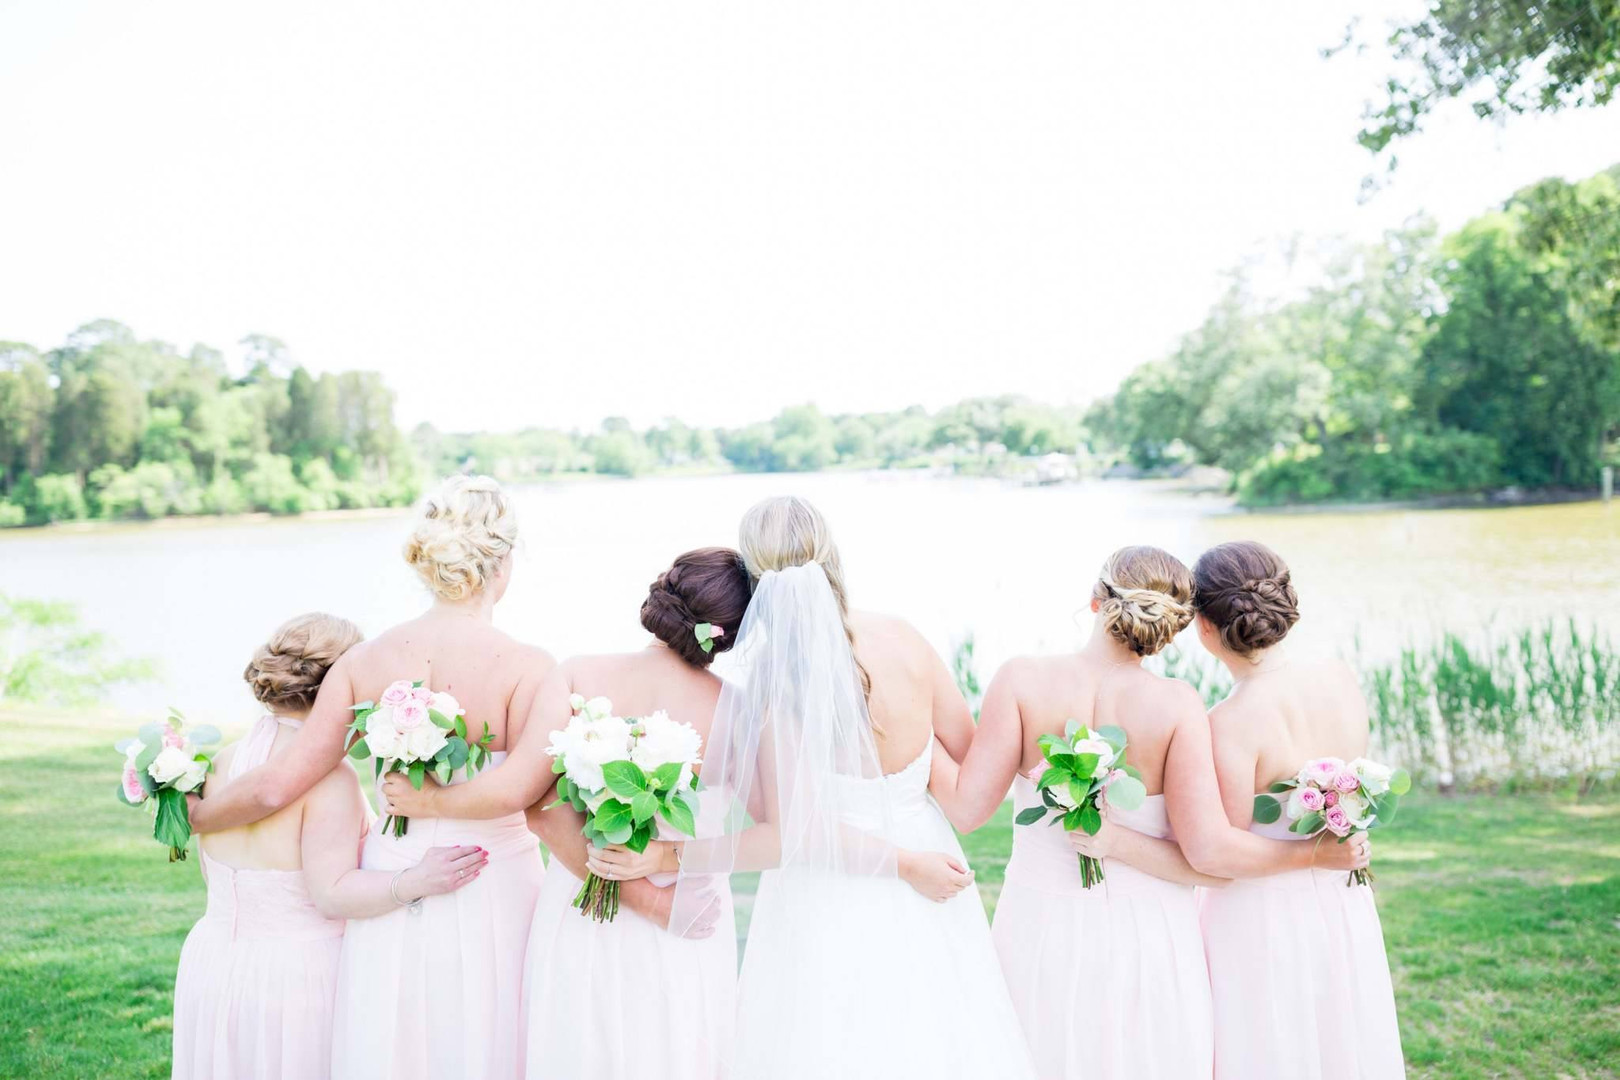 Bridal Party formal updo's